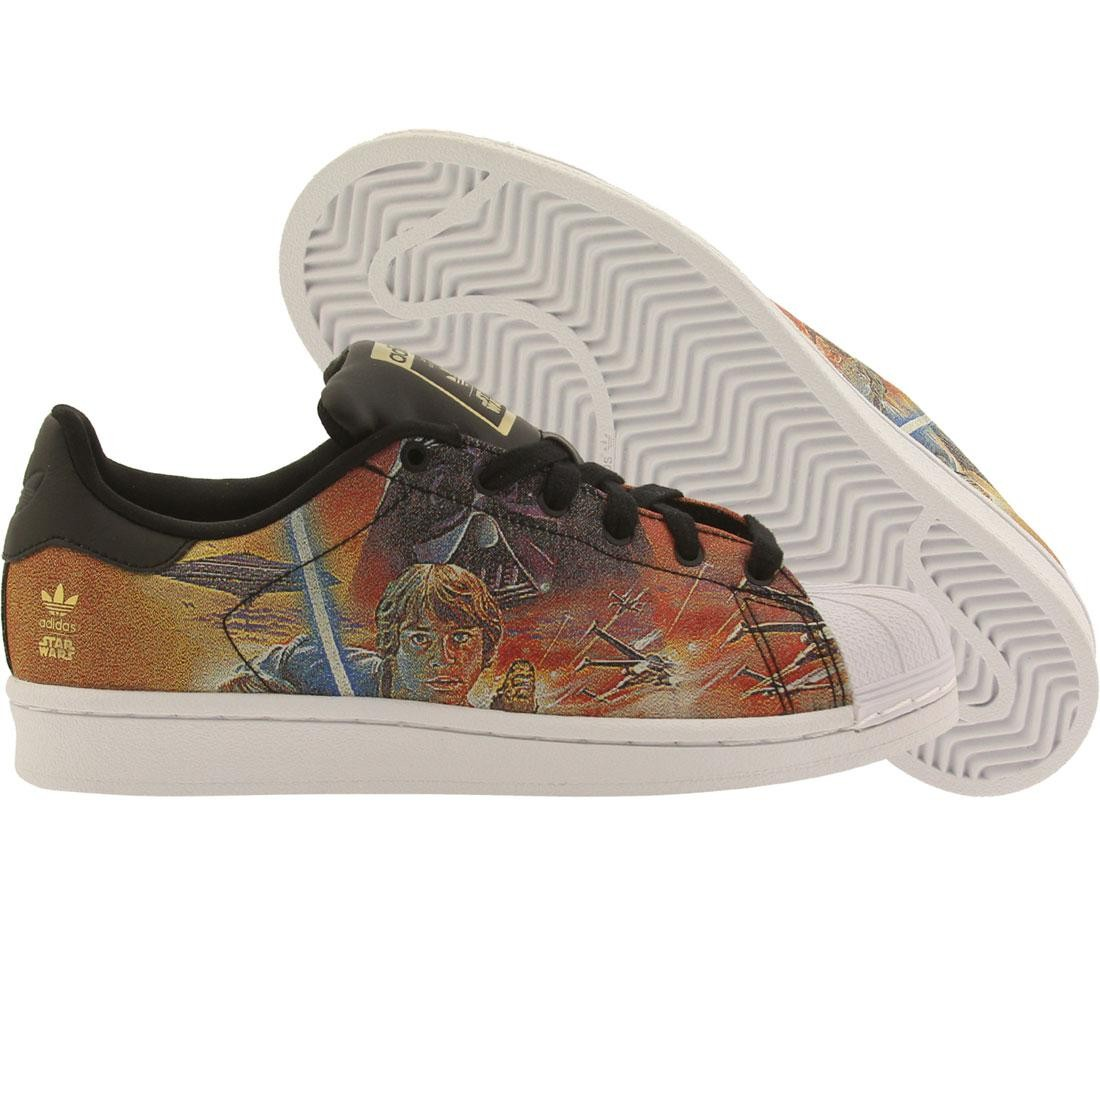 Adidas Star Wars   Compare Prices on